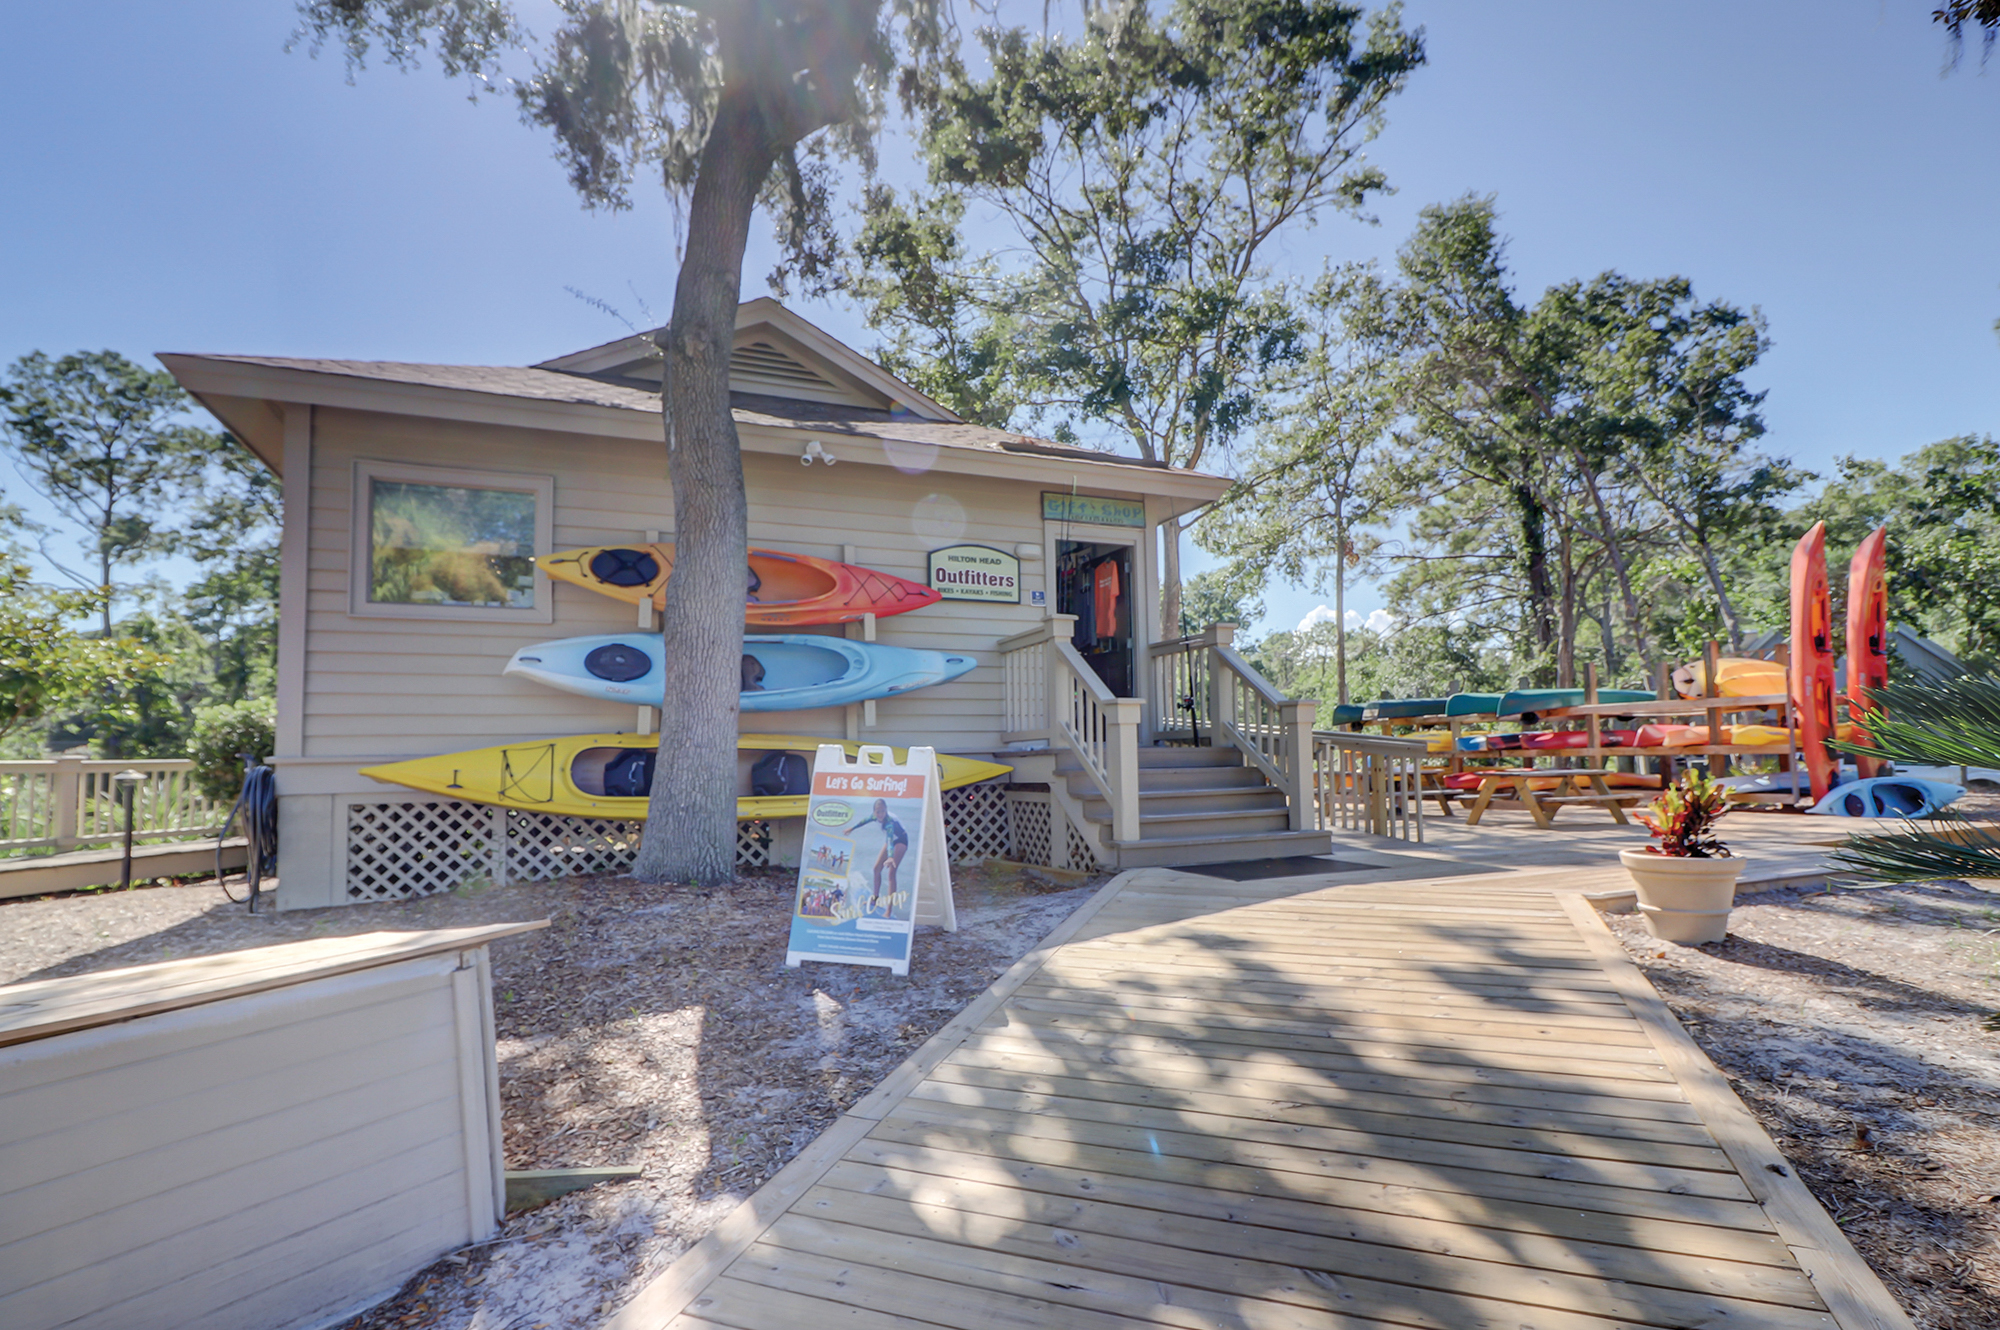 Outfitter Center on the 11 mile Lagoon in Palmetto Dunes